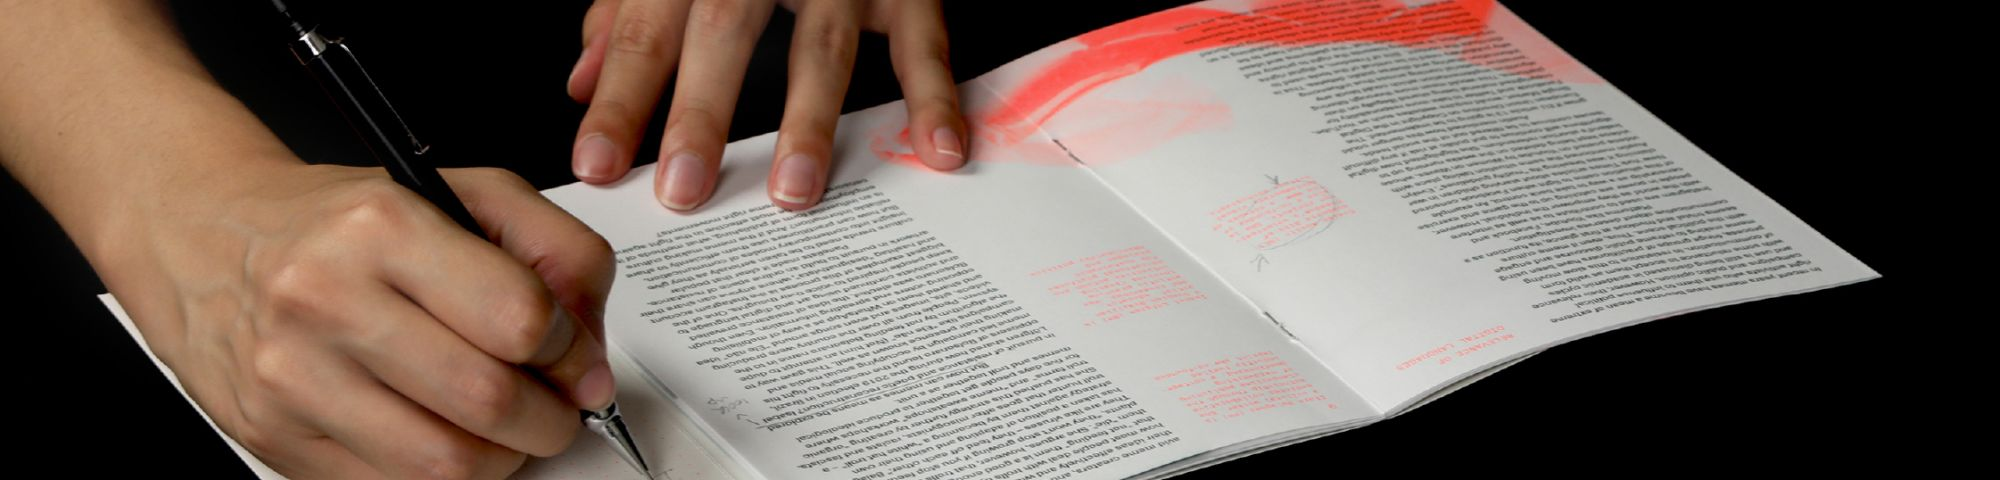 photograph of publication being written onto